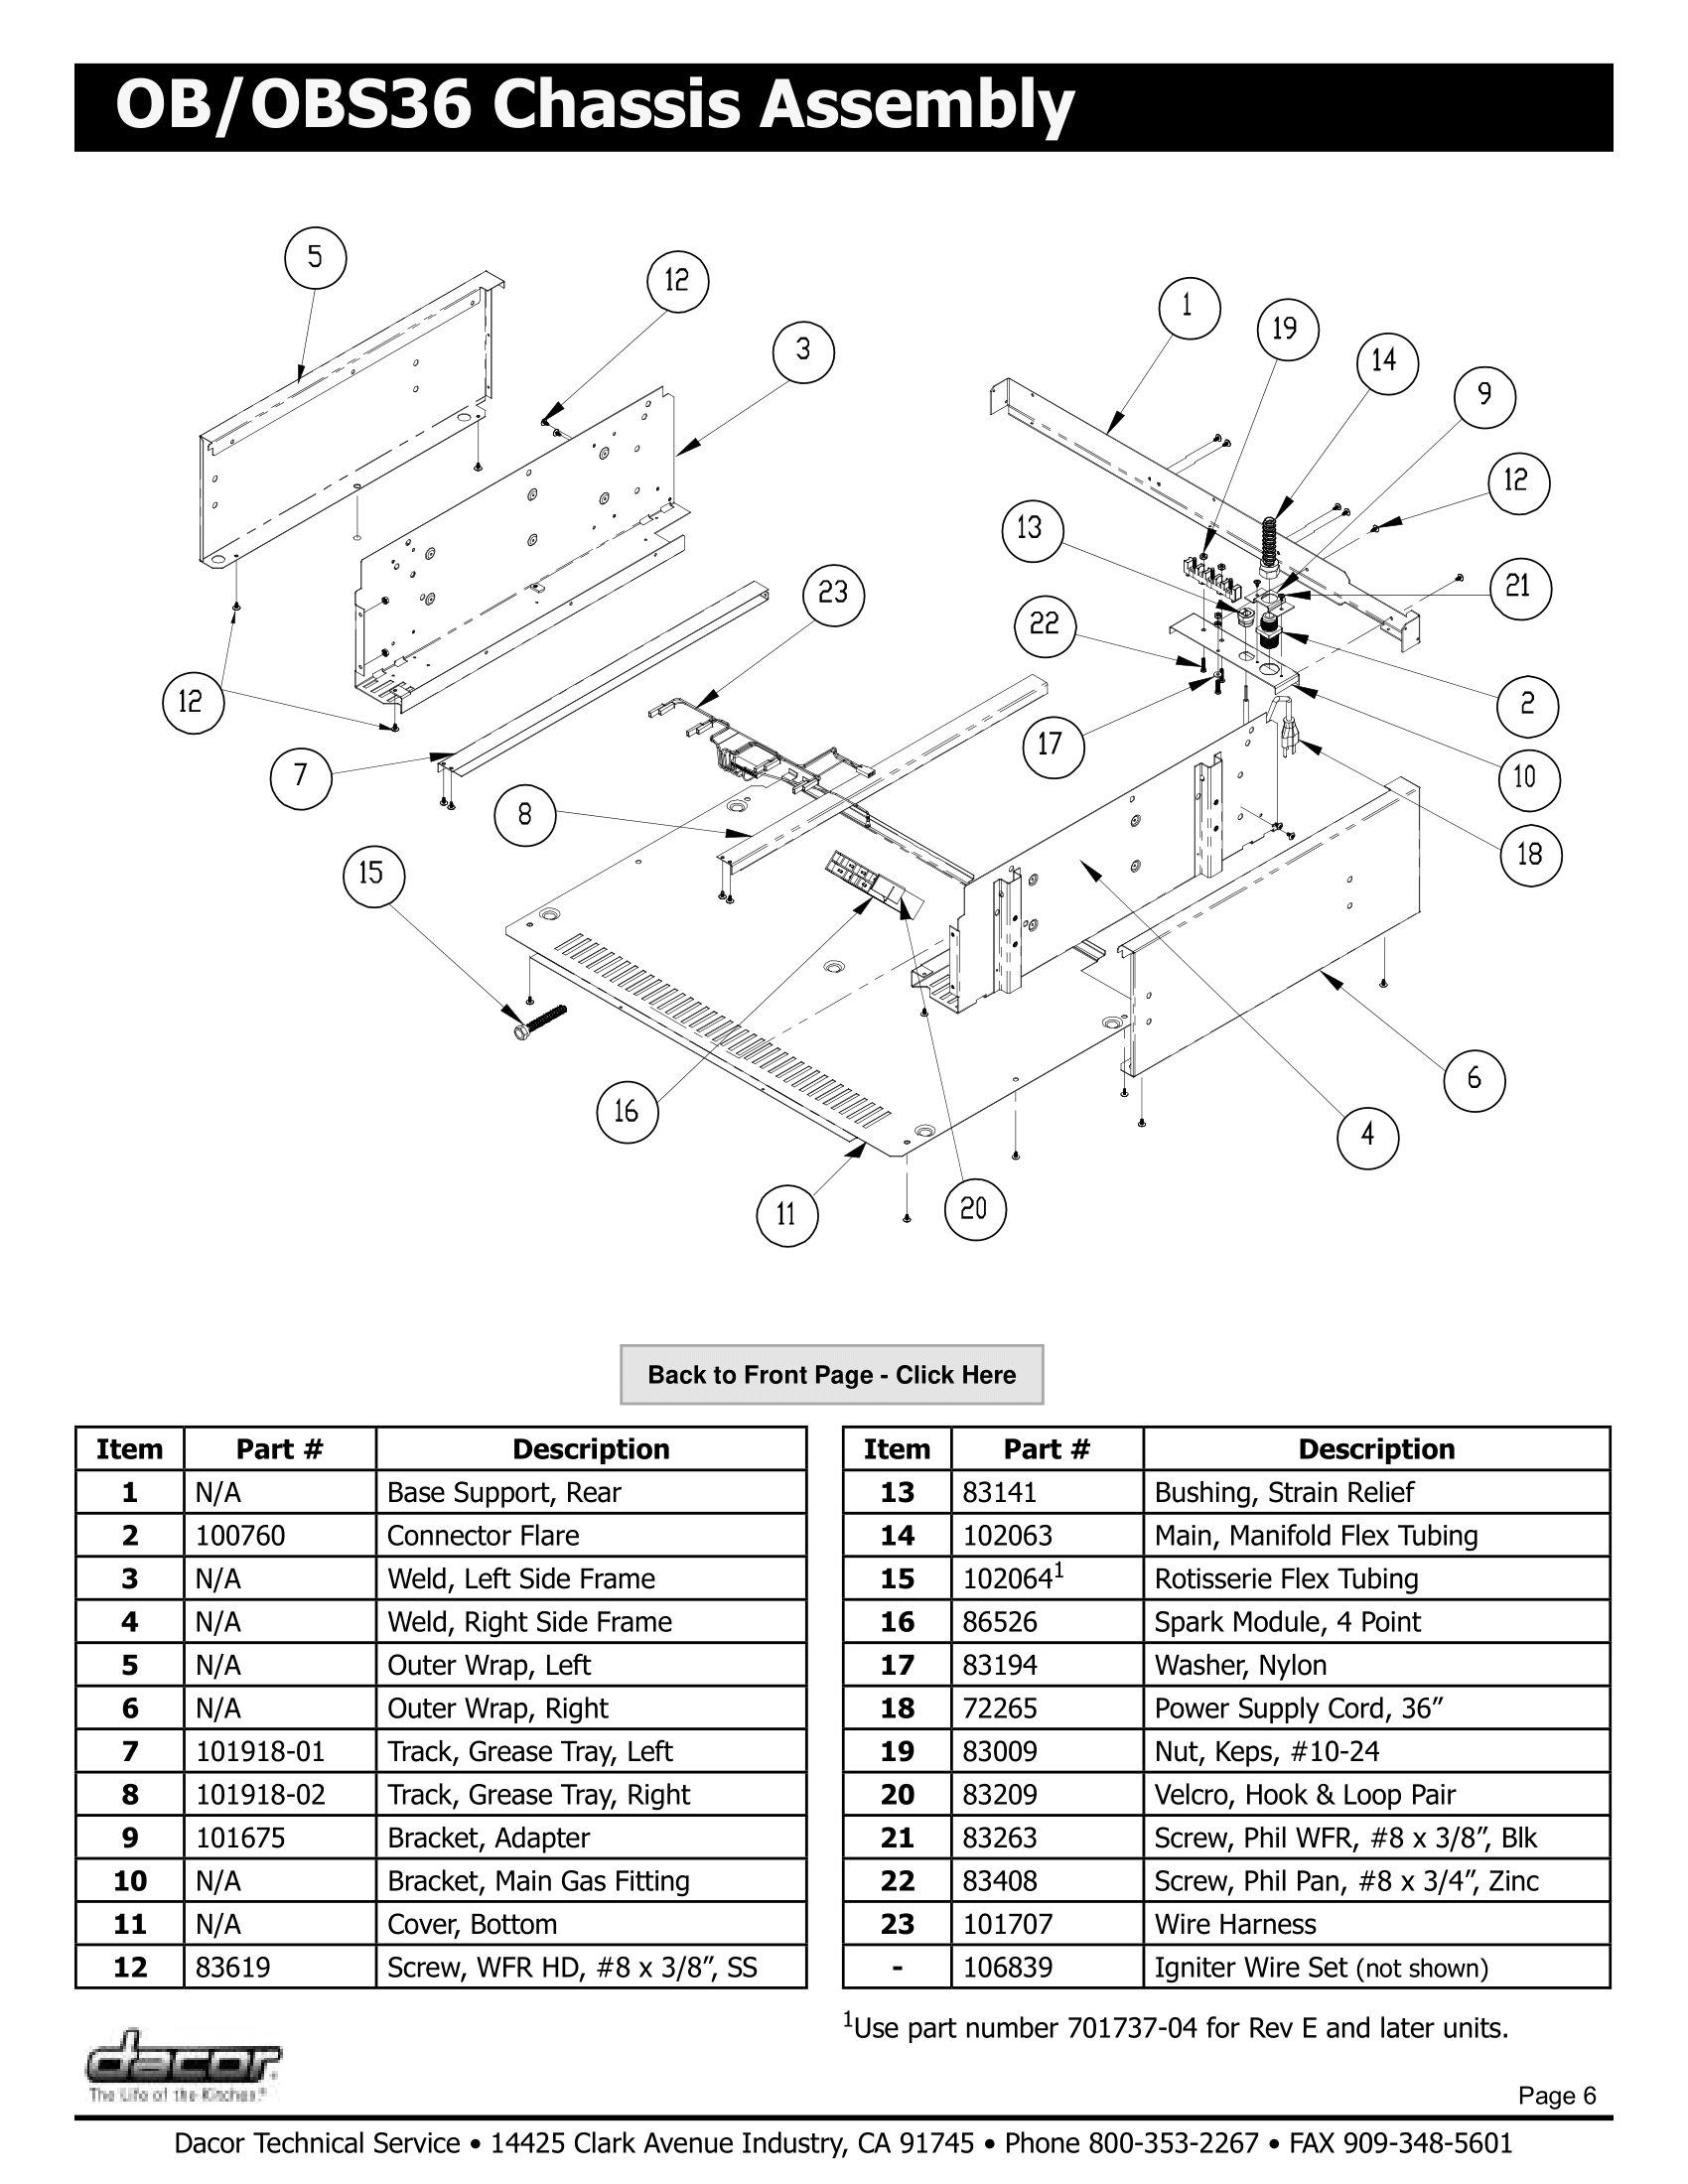 Dacor OB36 Chassis Assembly Schematic